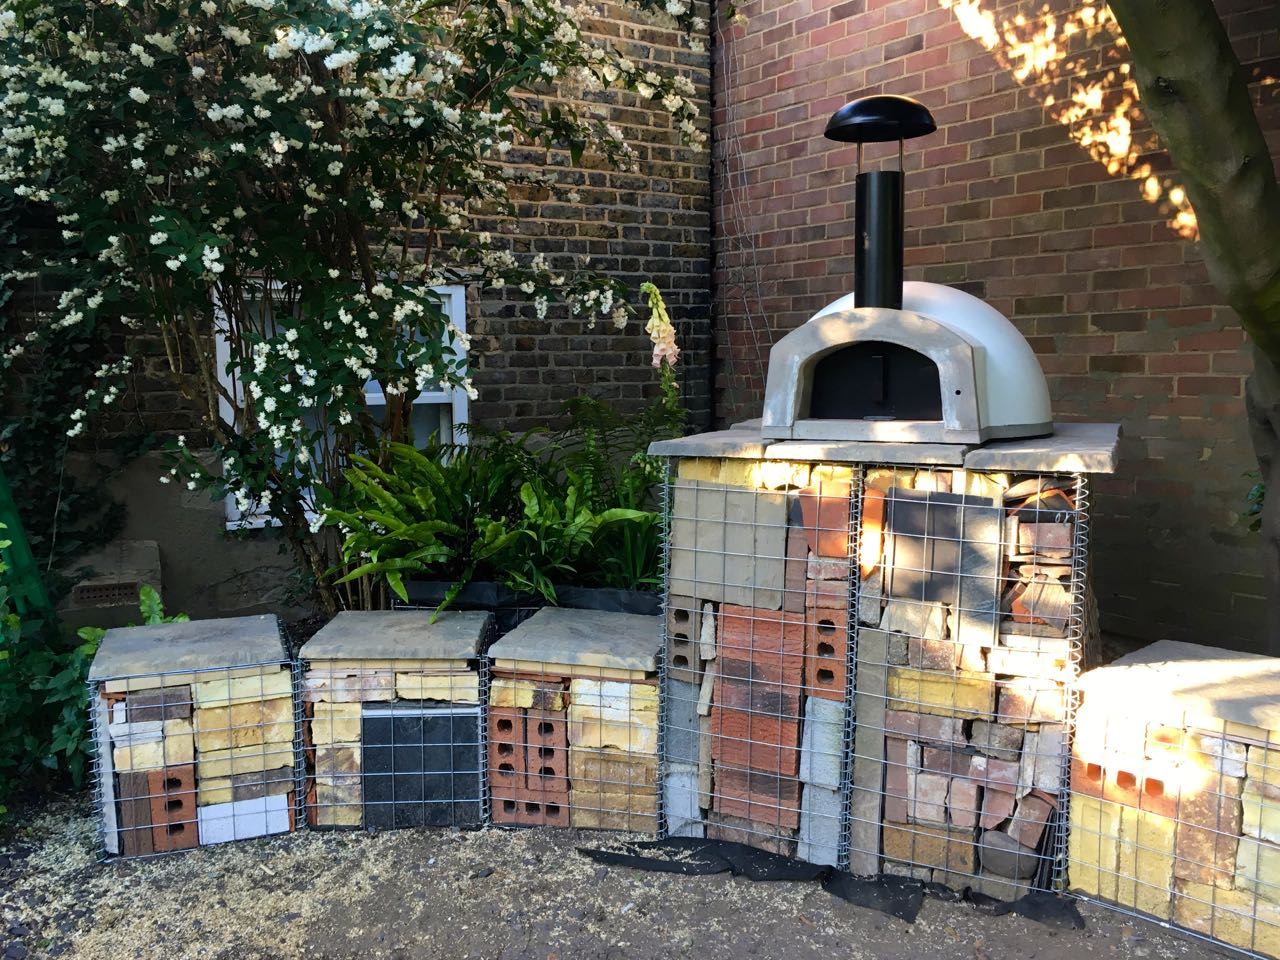 Our pizza oven on top of the gabion baskets